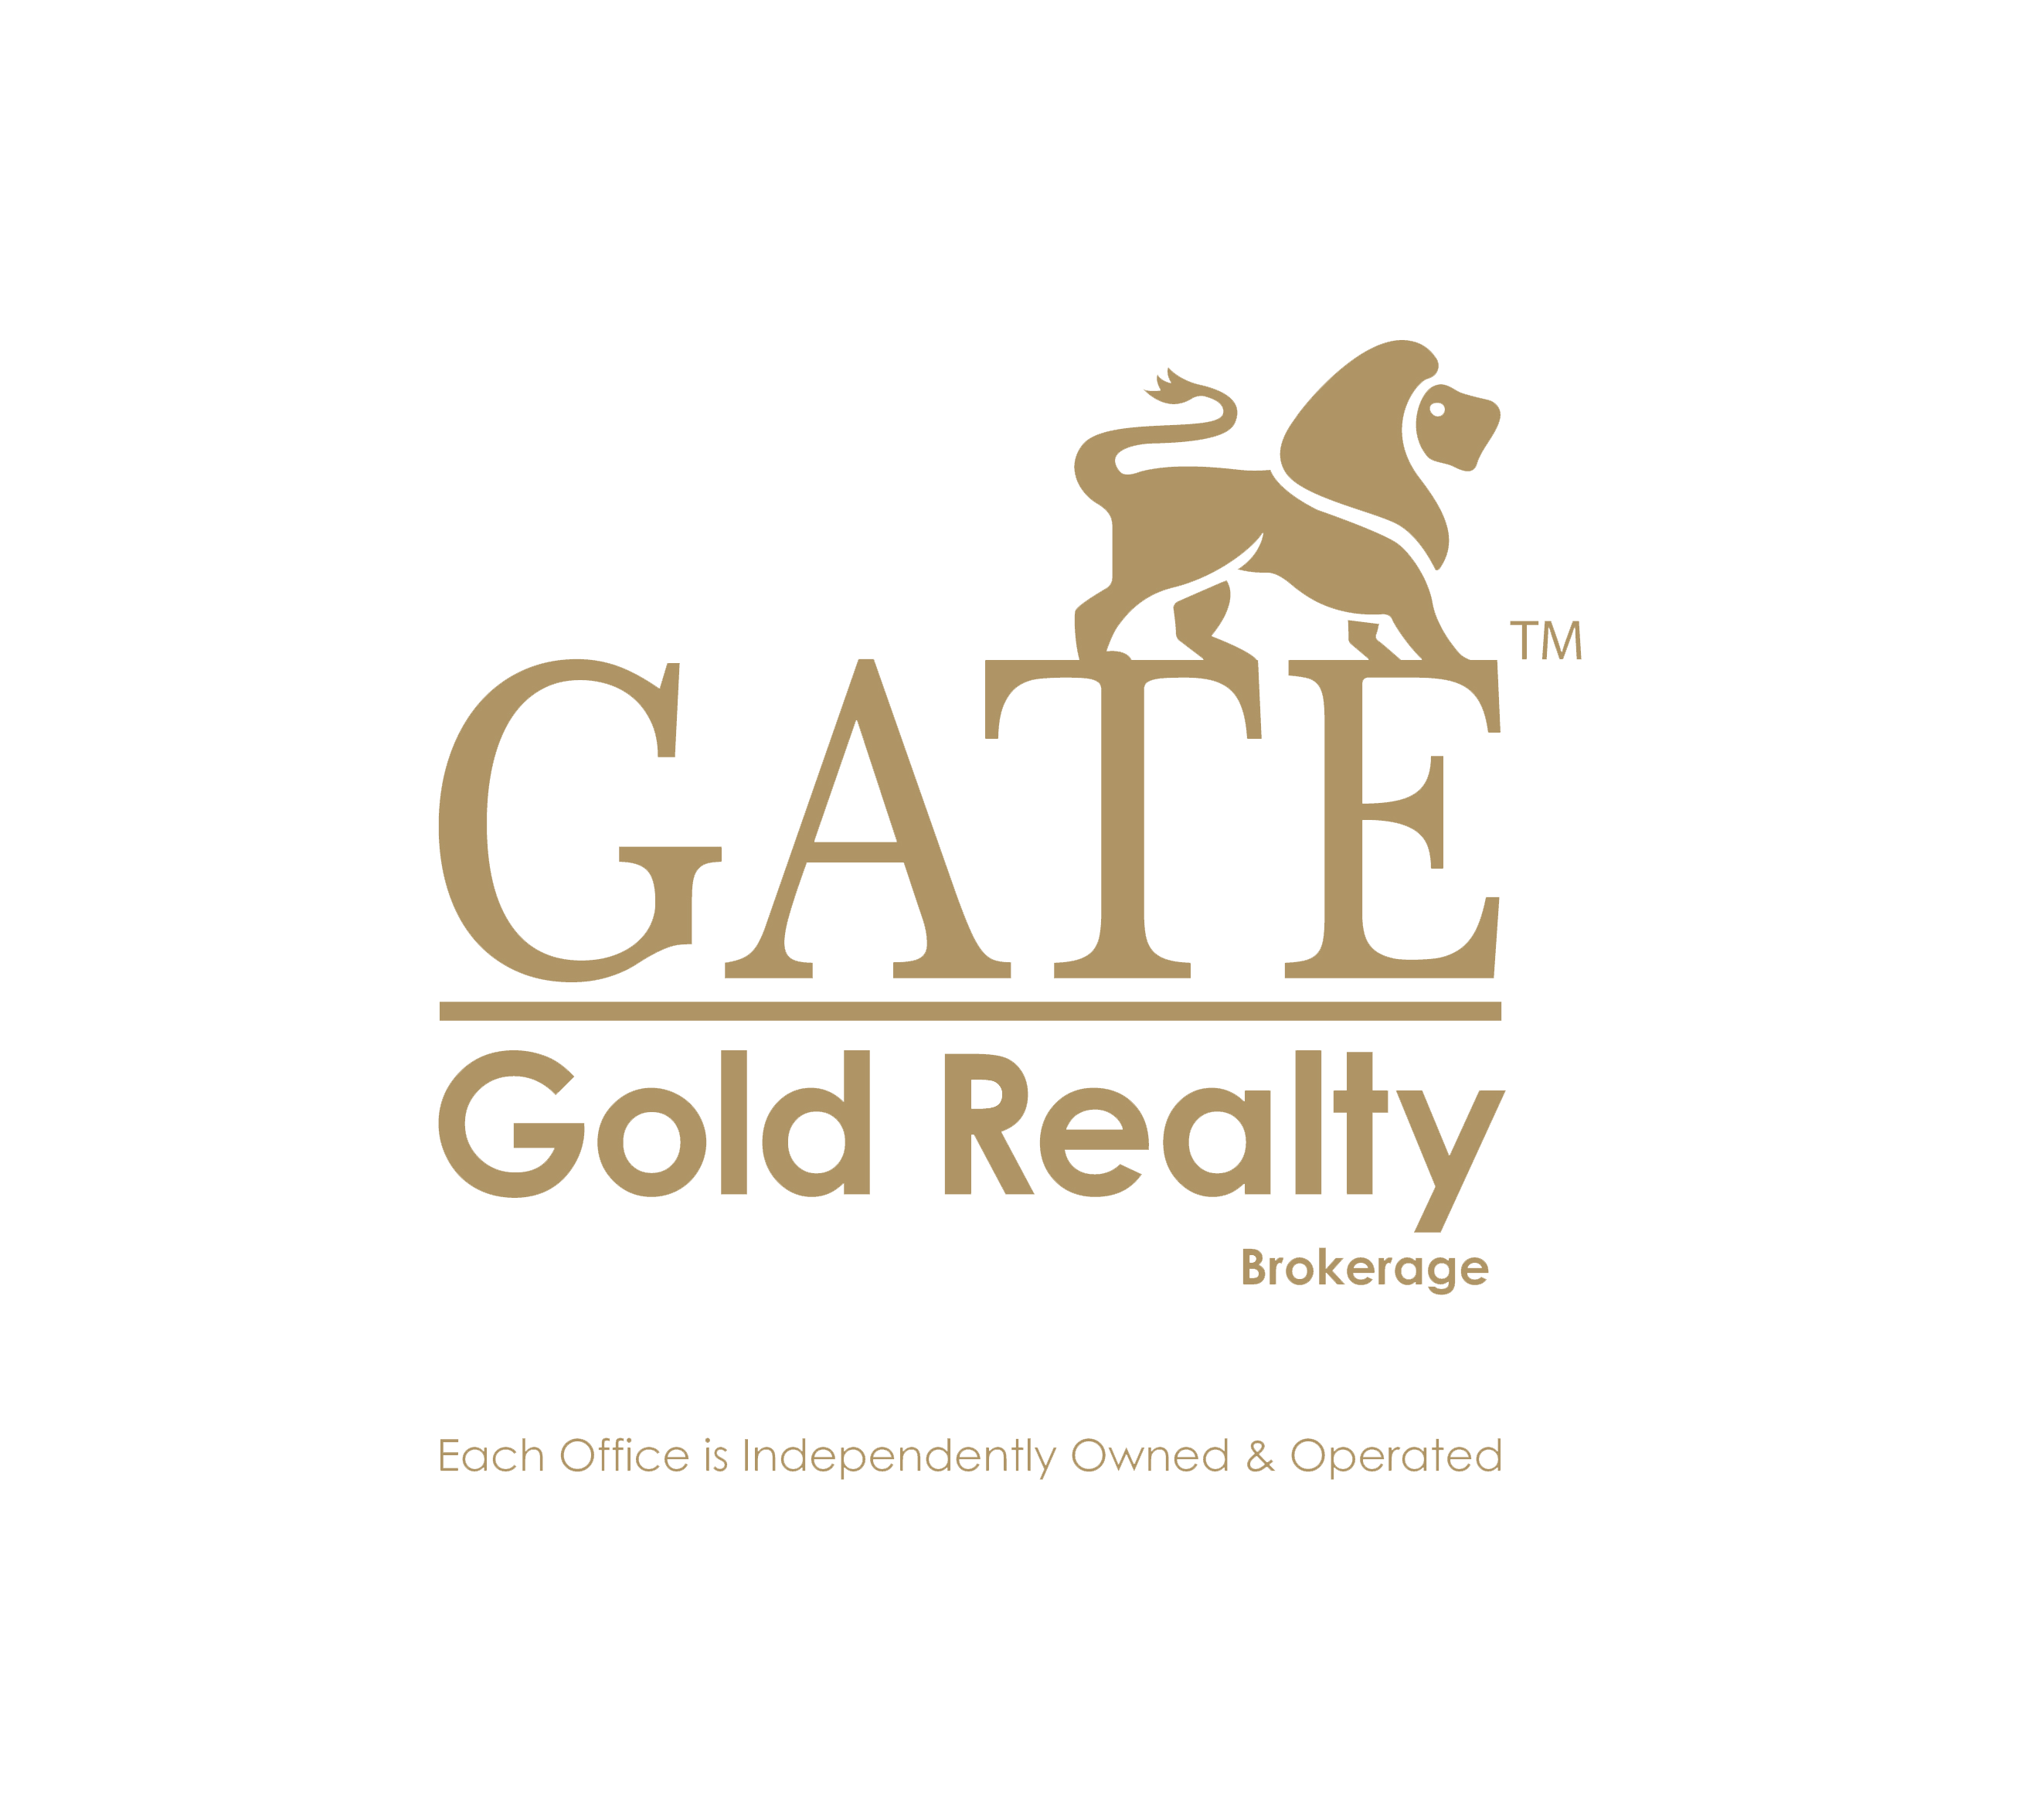 GATE GOLD REALTY Brokerage*